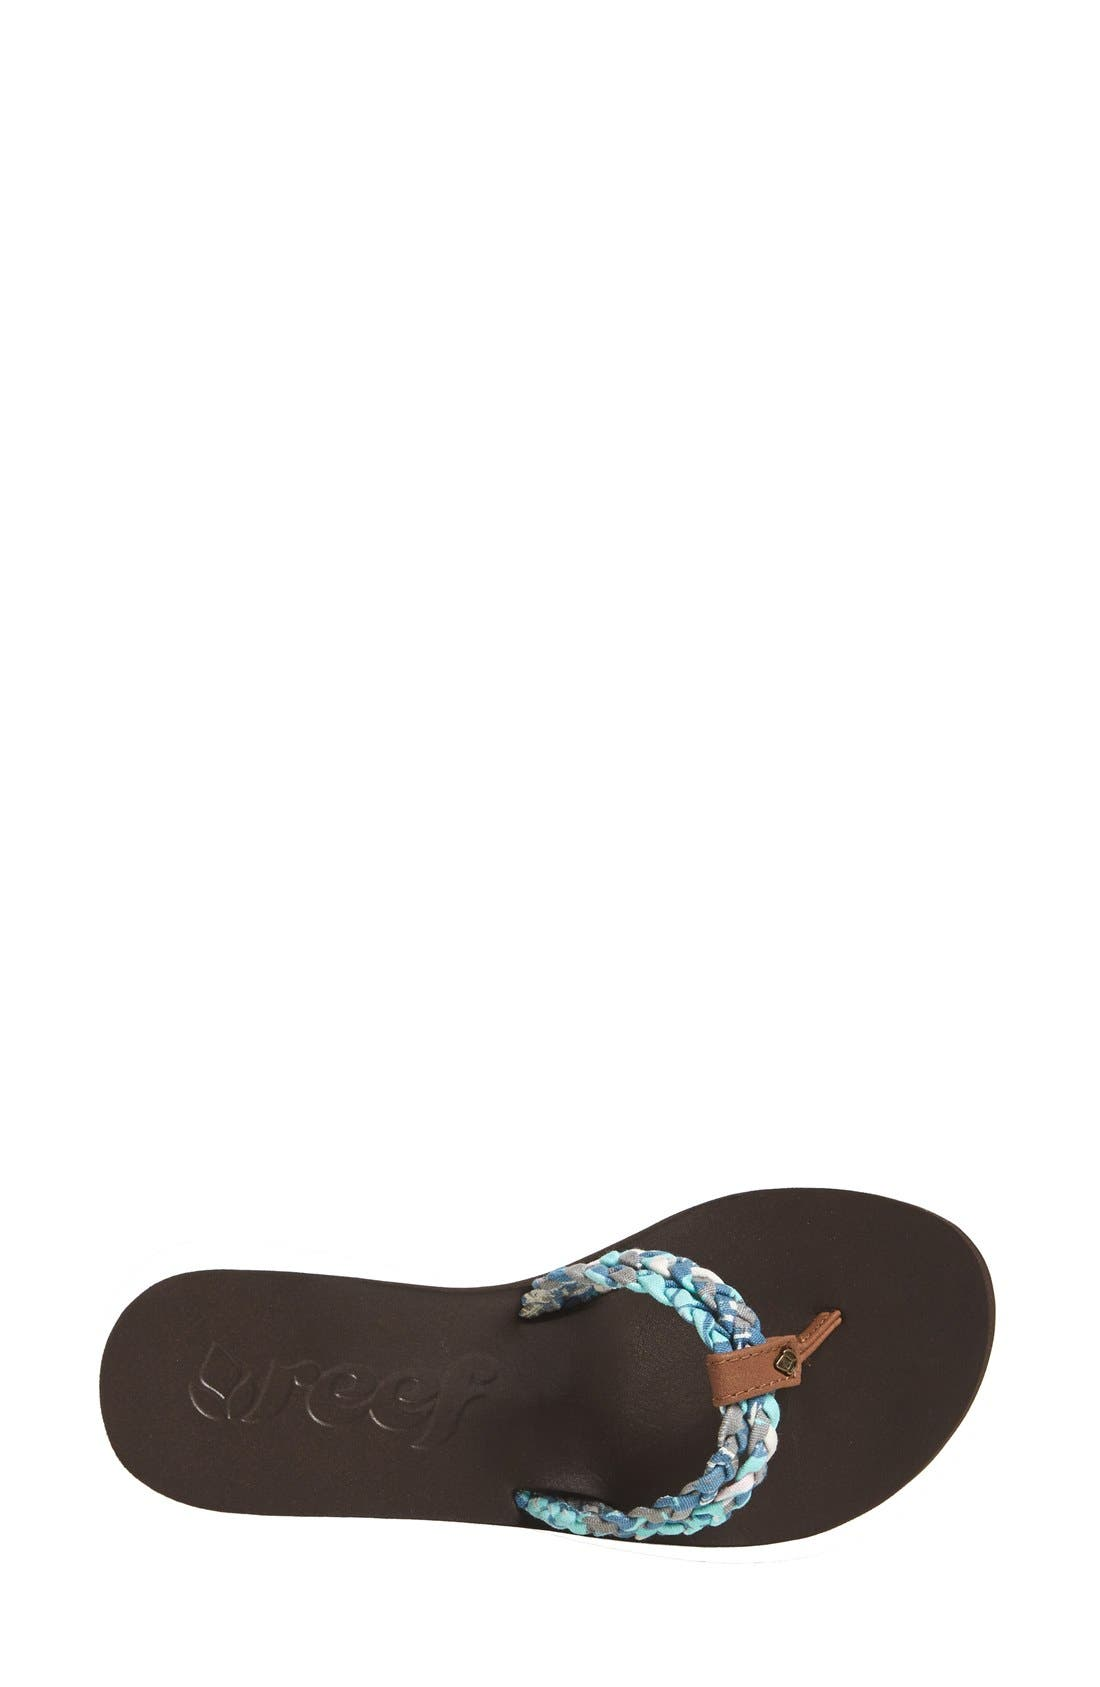 Alternate Image 2  - Reef 'Twisted Sky' Flip-Flop Thong Sandal (Women)